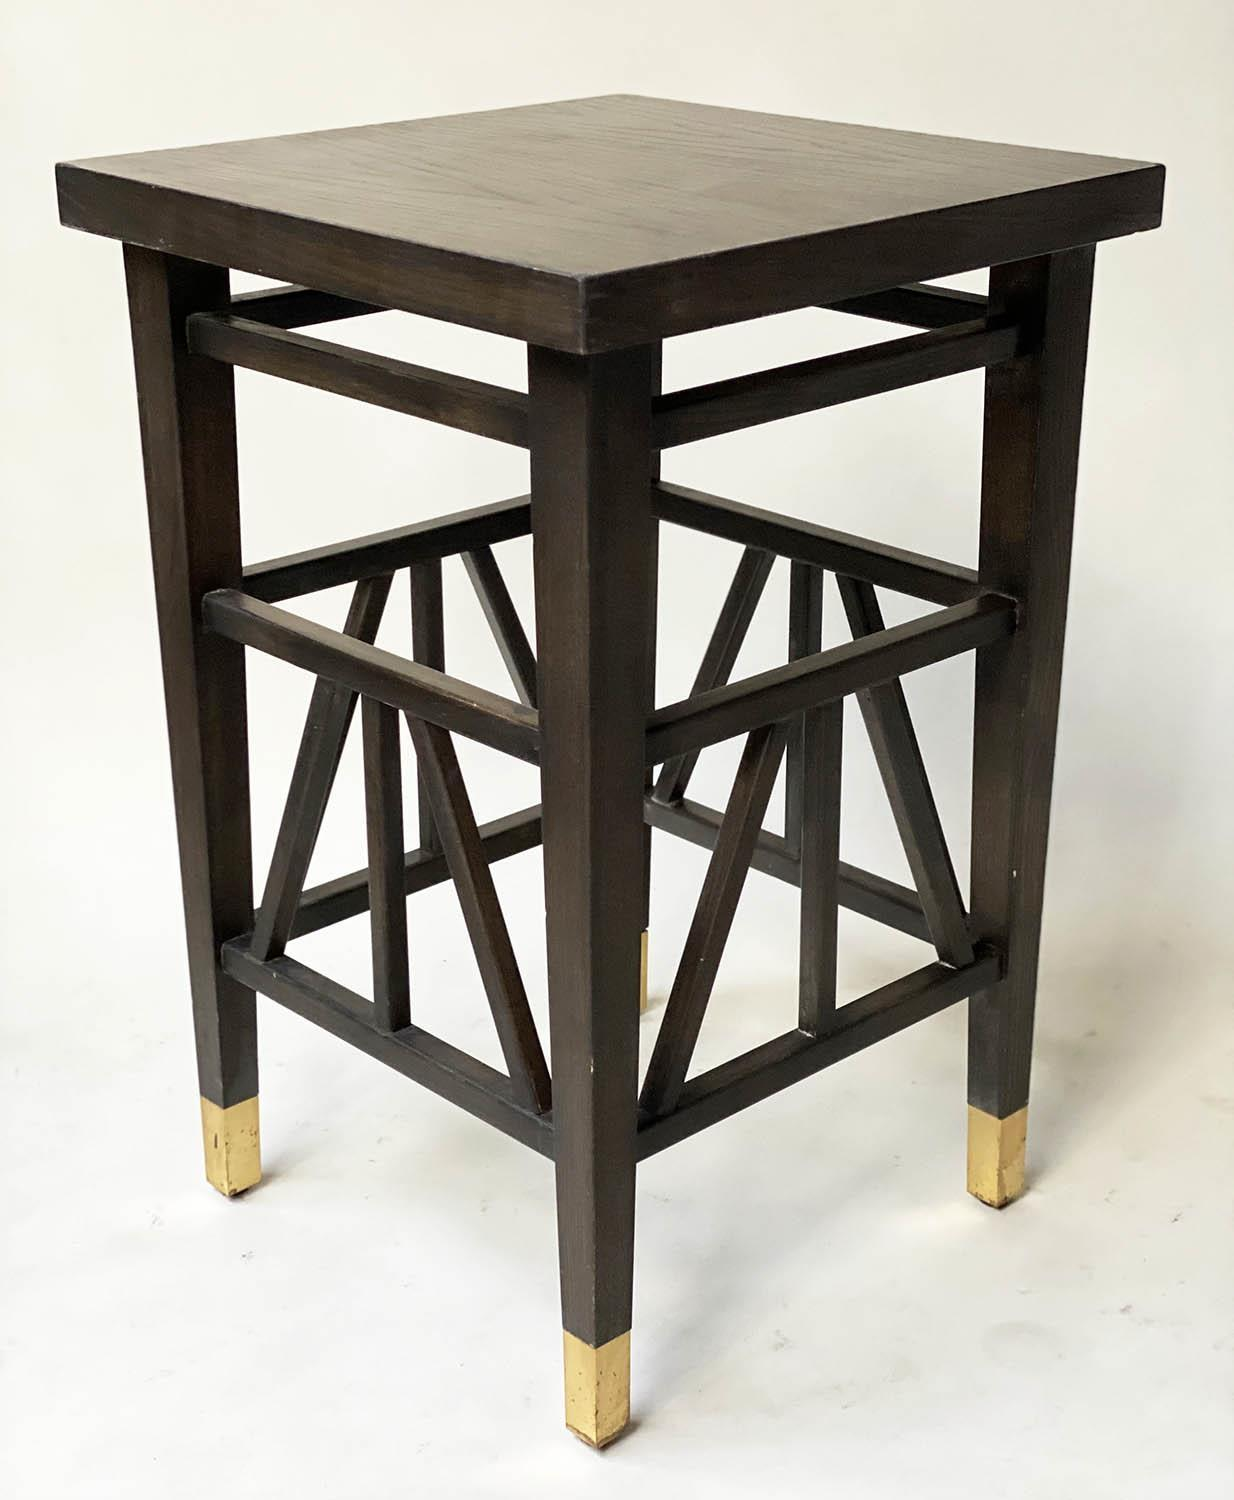 LAMP TABLES, a pair, Liberty style black lacquered, square tops with brass tipped supports, 40cm x - Image 3 of 5